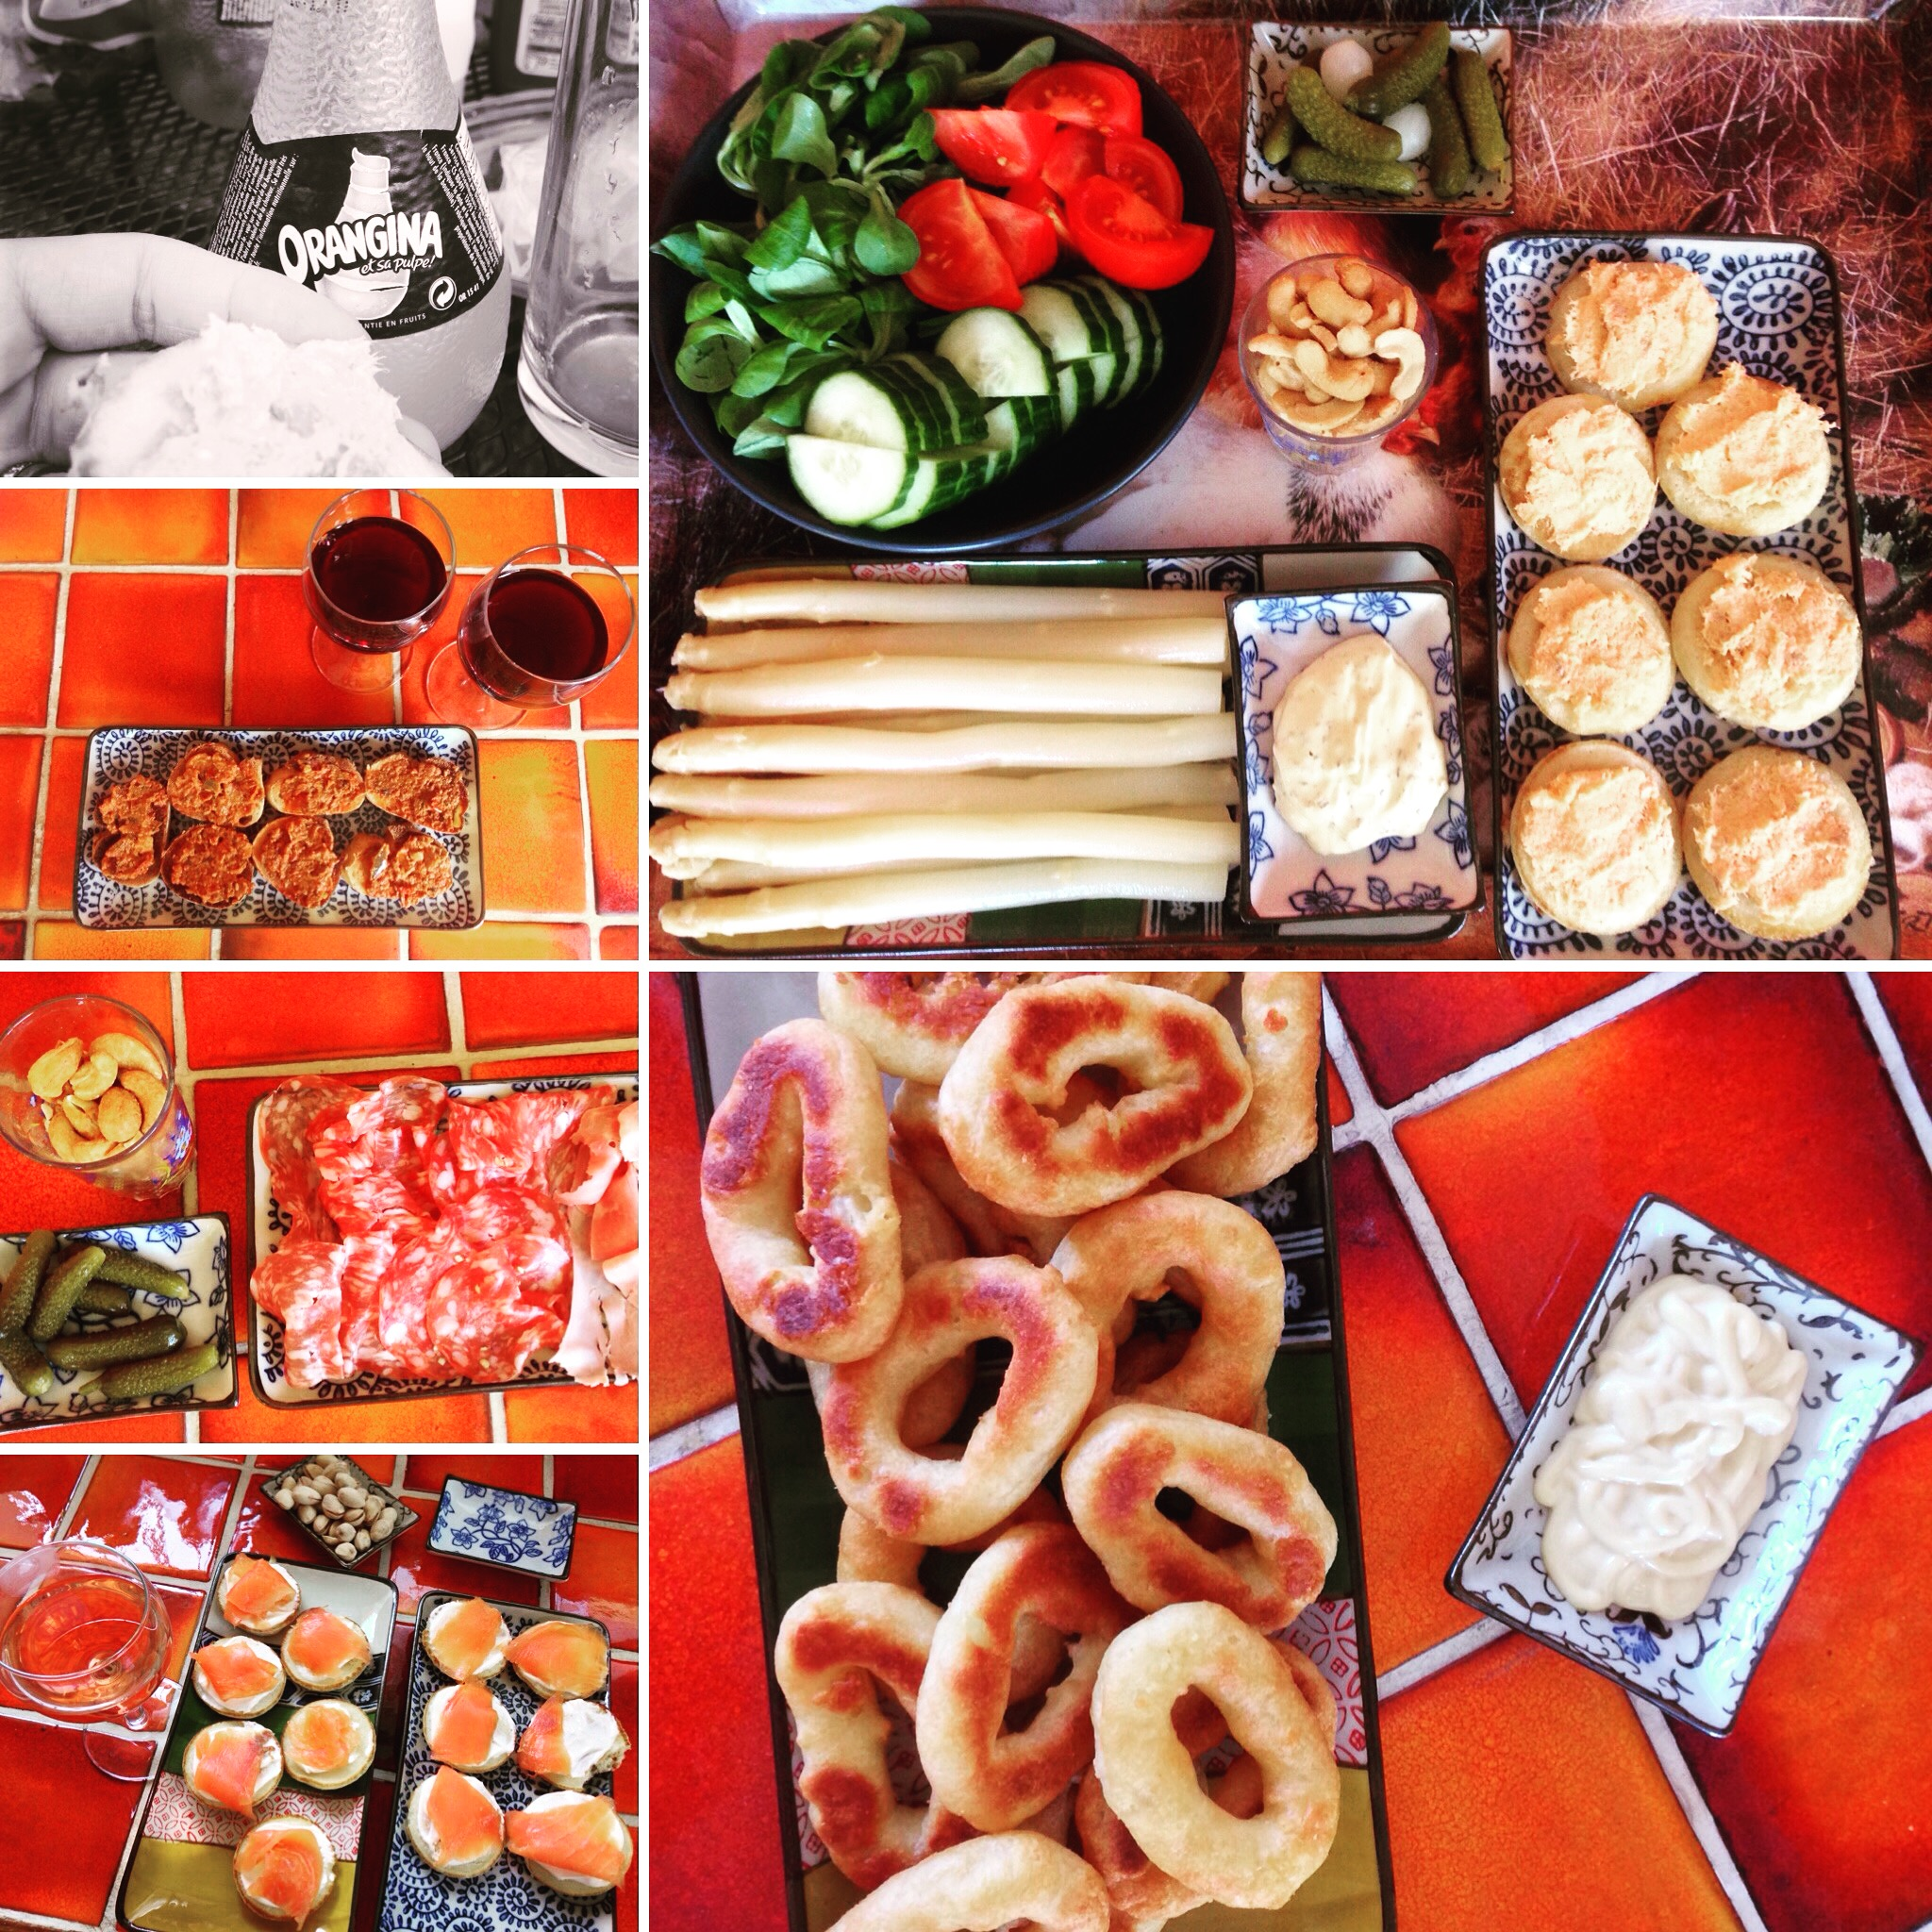 Some simple homemade apero dishes.